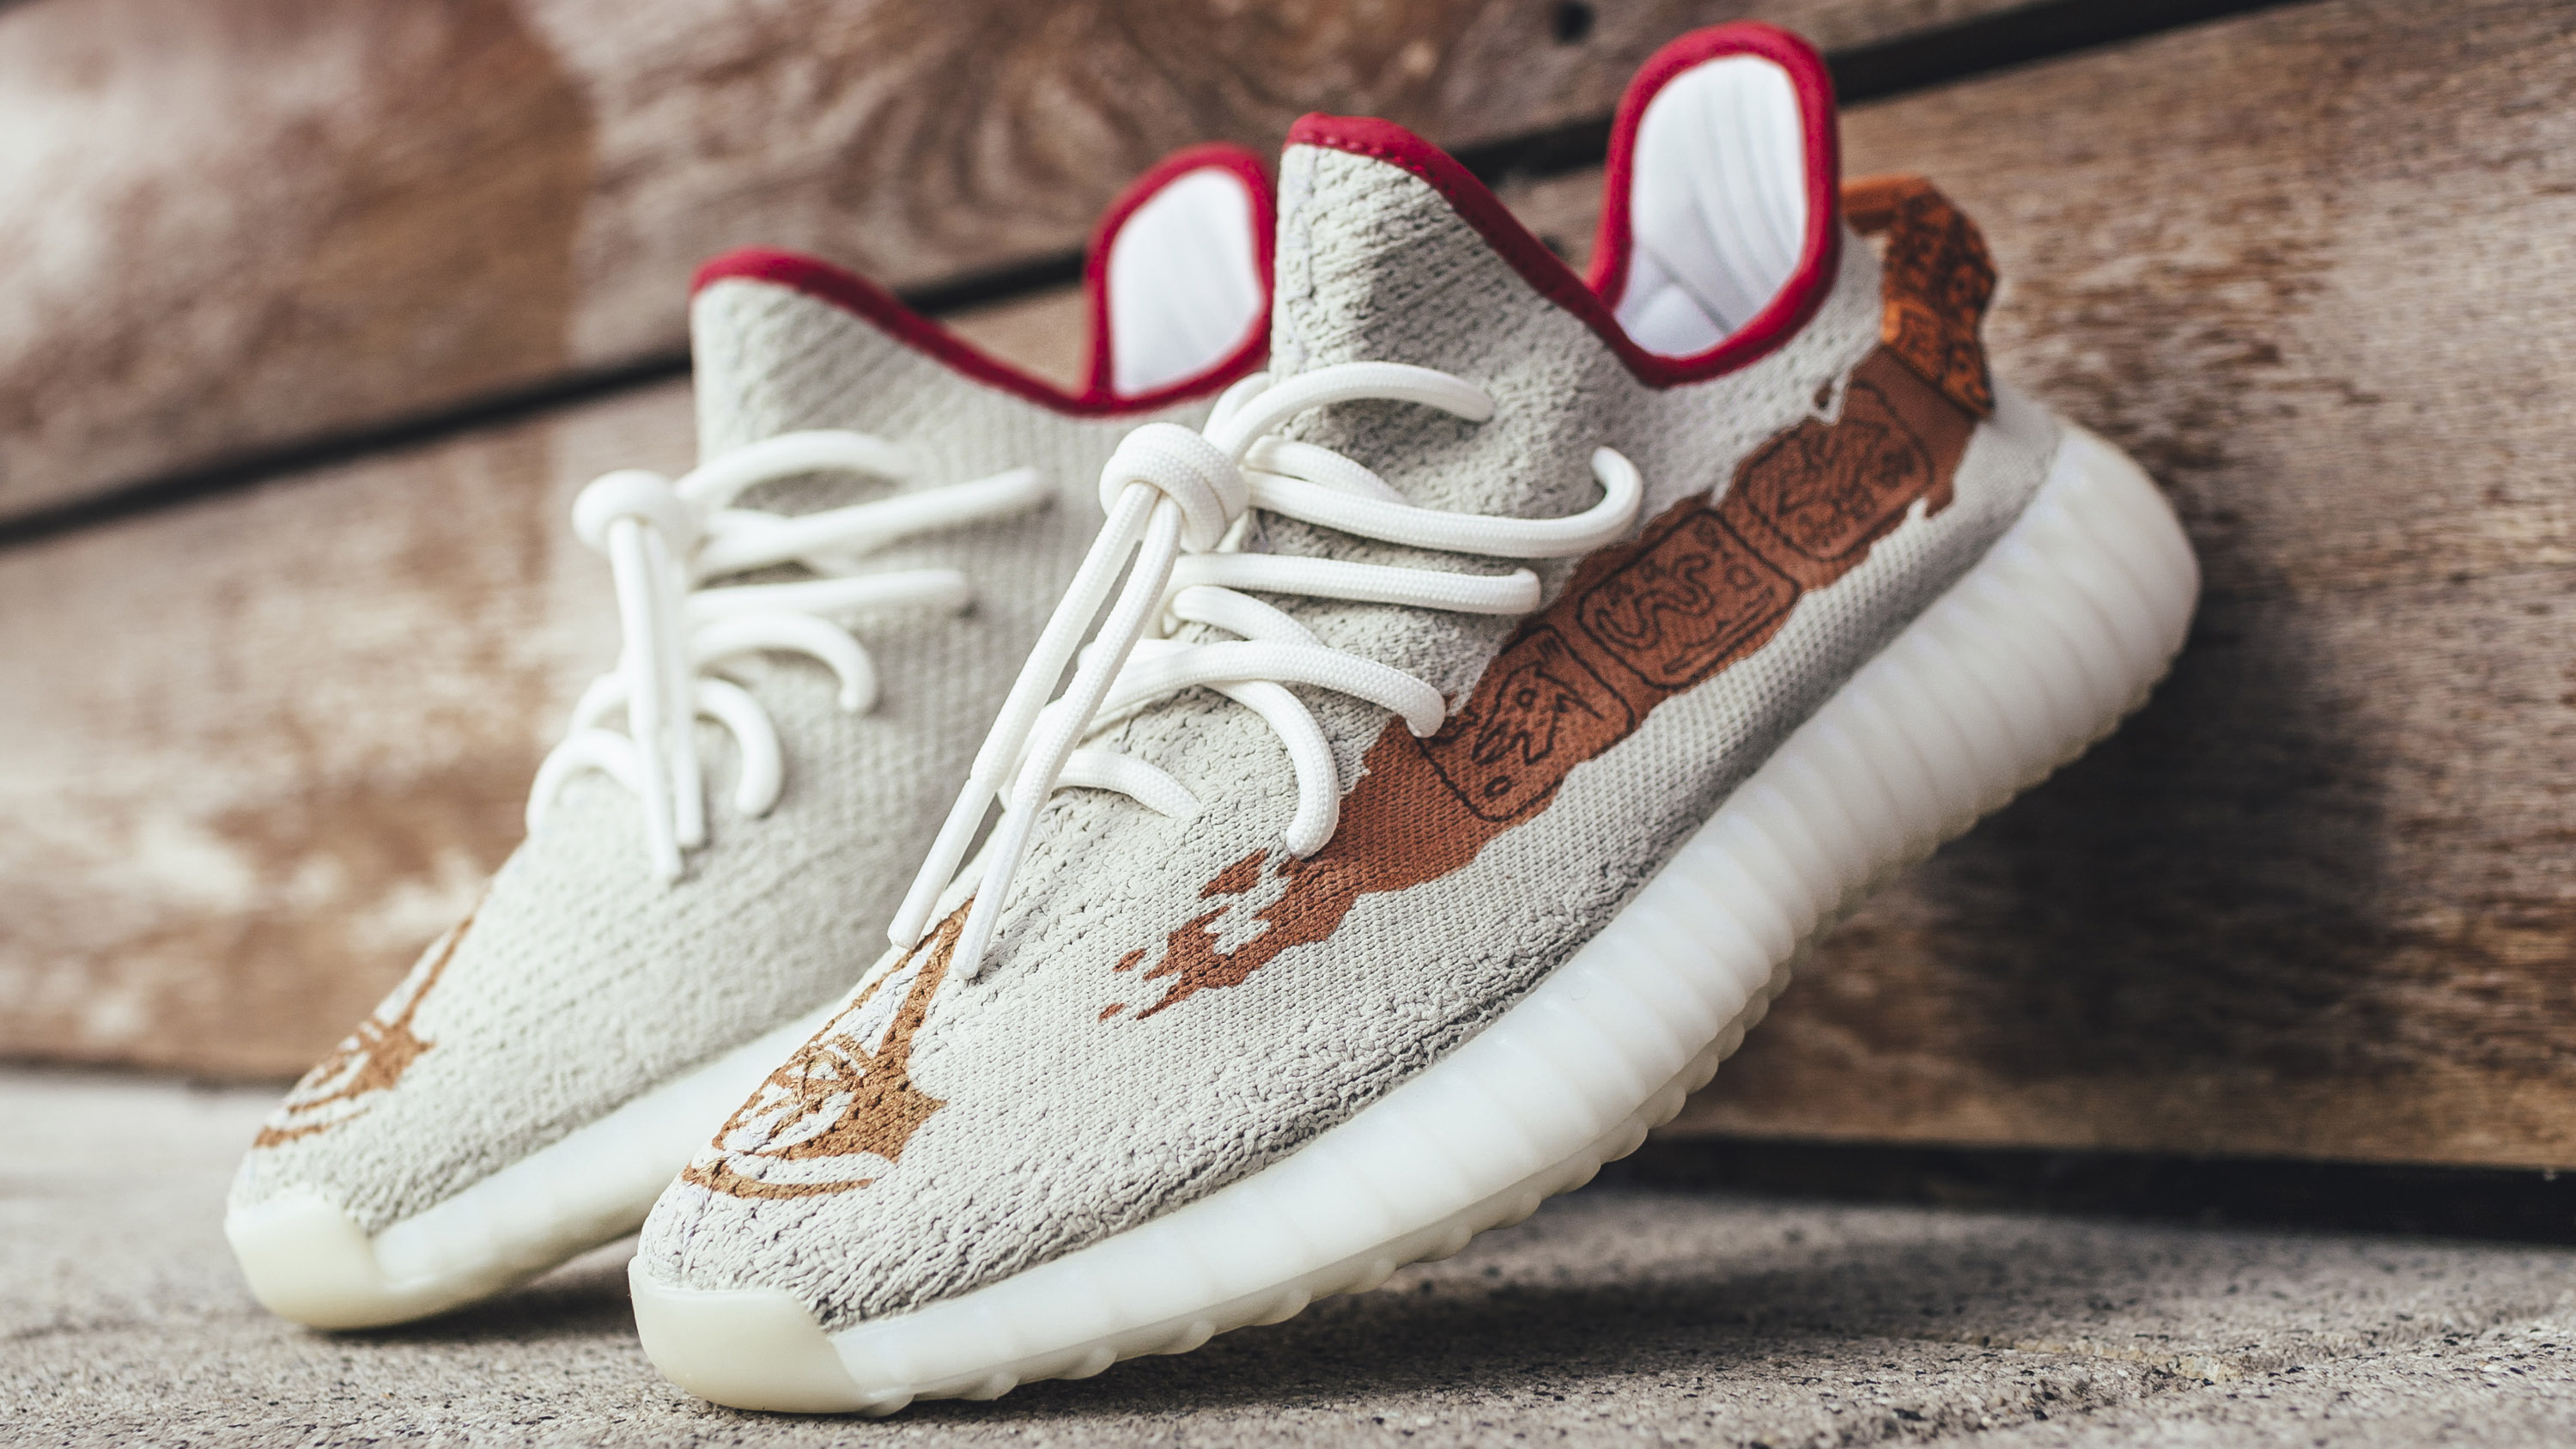 5afb29fcc891e Here s your chance to win a pair of ultra-exclusive Assassin s Creed  Origins Yeezys